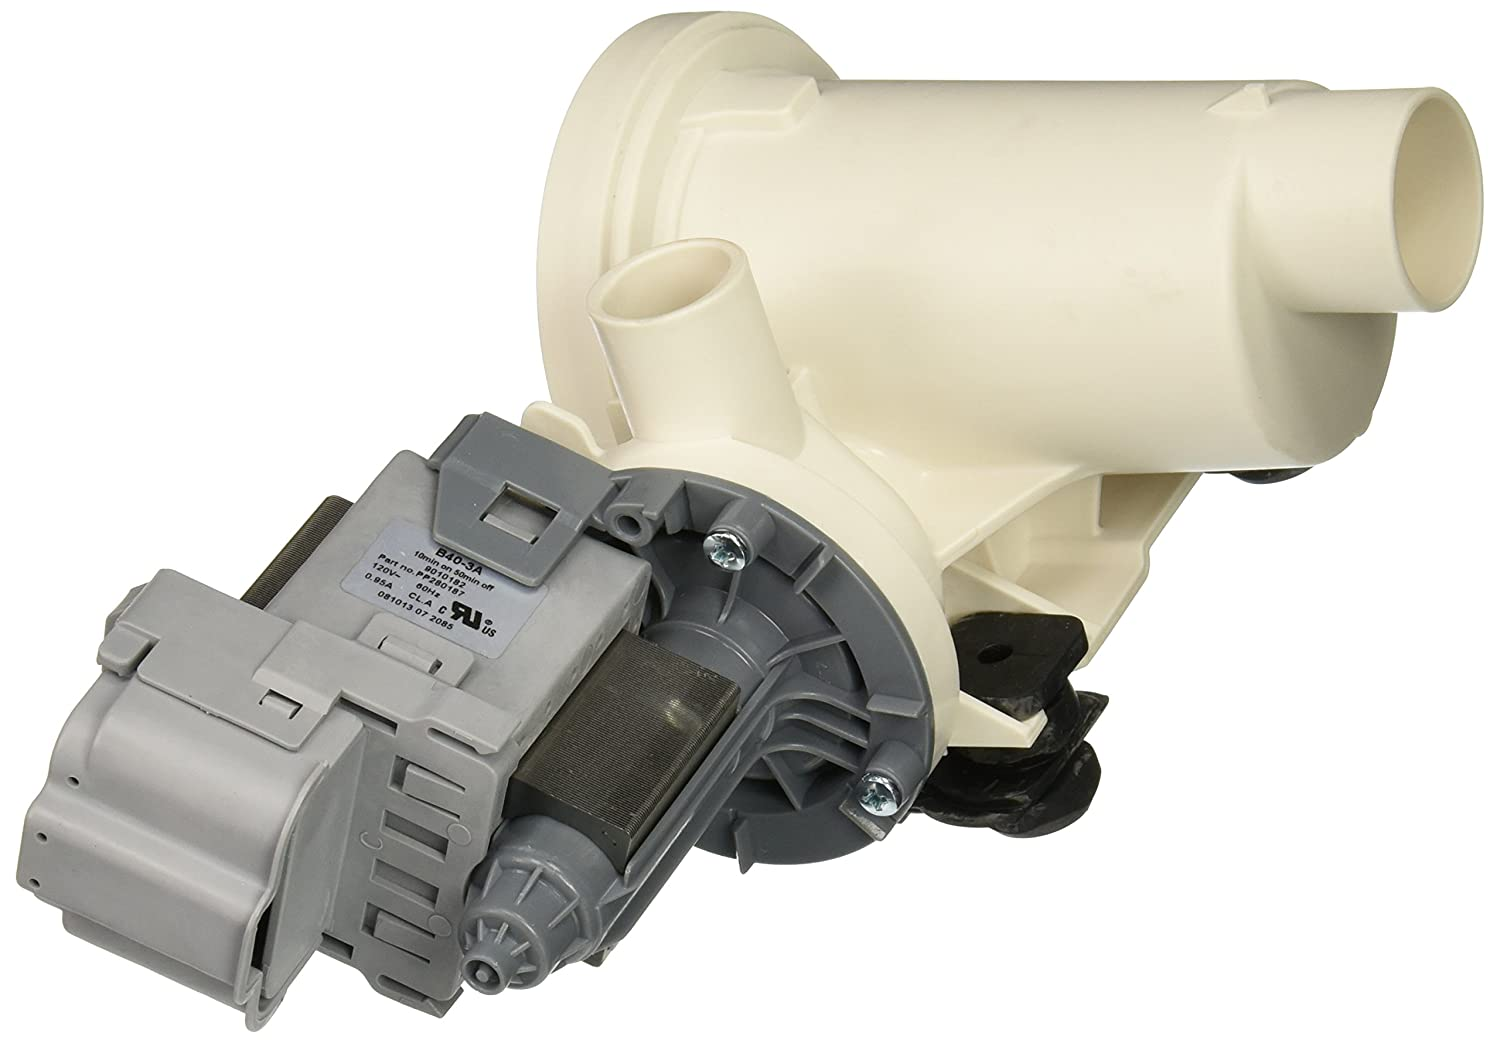 Supco drain pump for whirlpool 280187 complete pump motor for How to test a washer drain pump motor